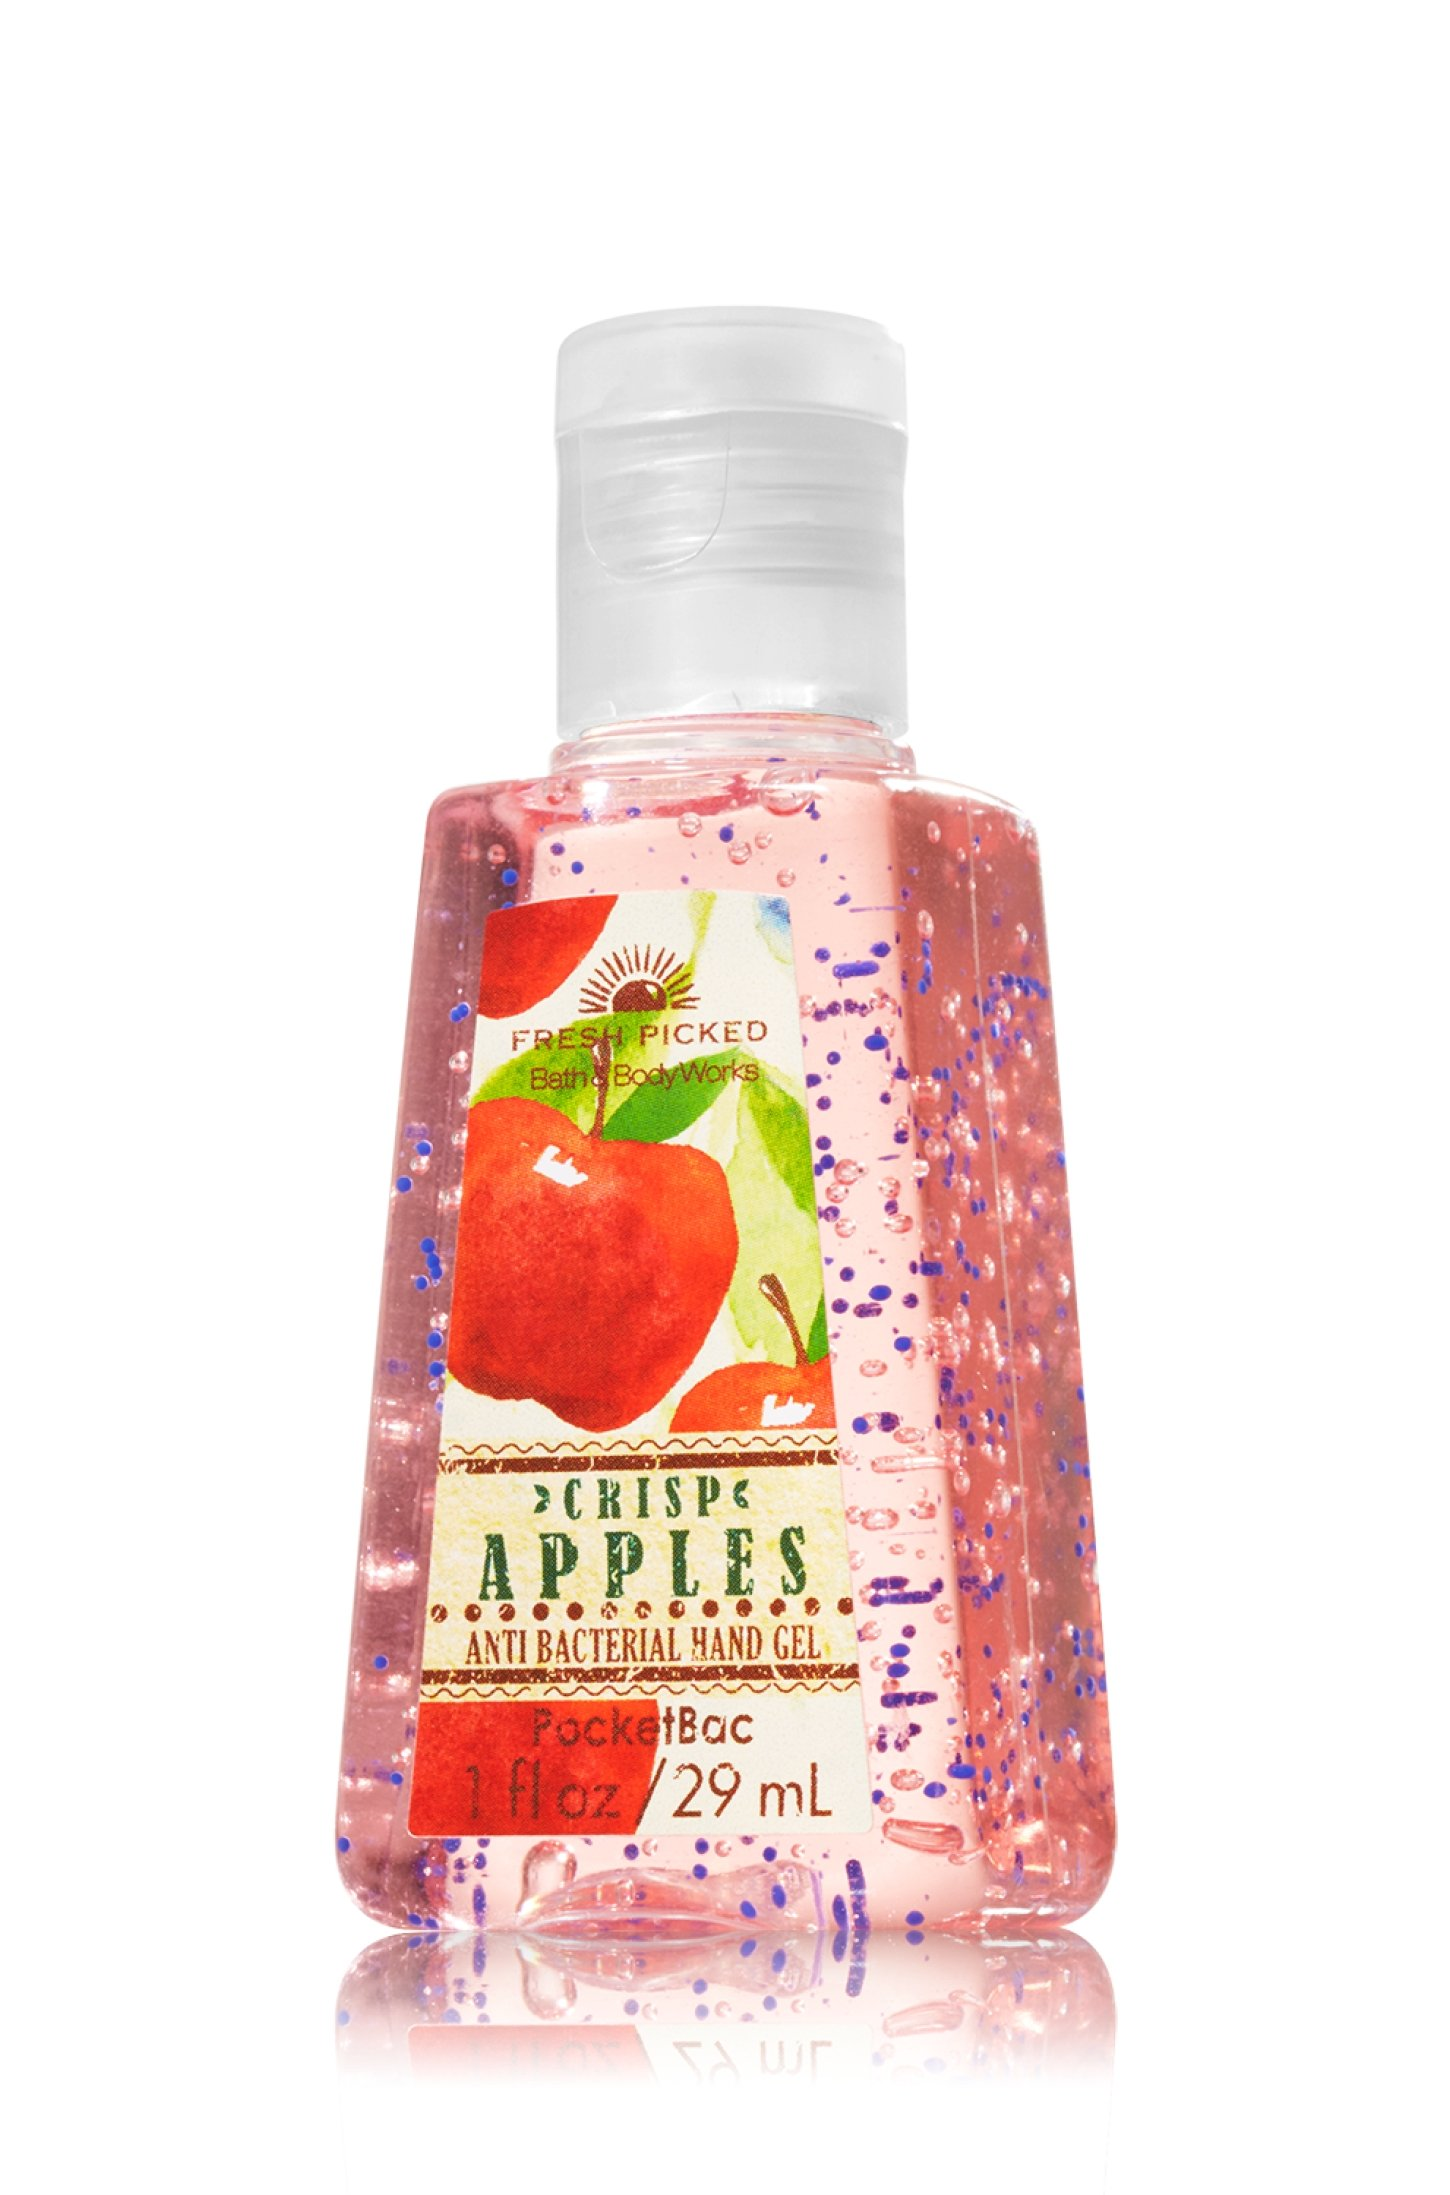 Bath and Body Works Pocketbac Sanitizer Anti-bacterial Hand Gel Sanitiser 29ml